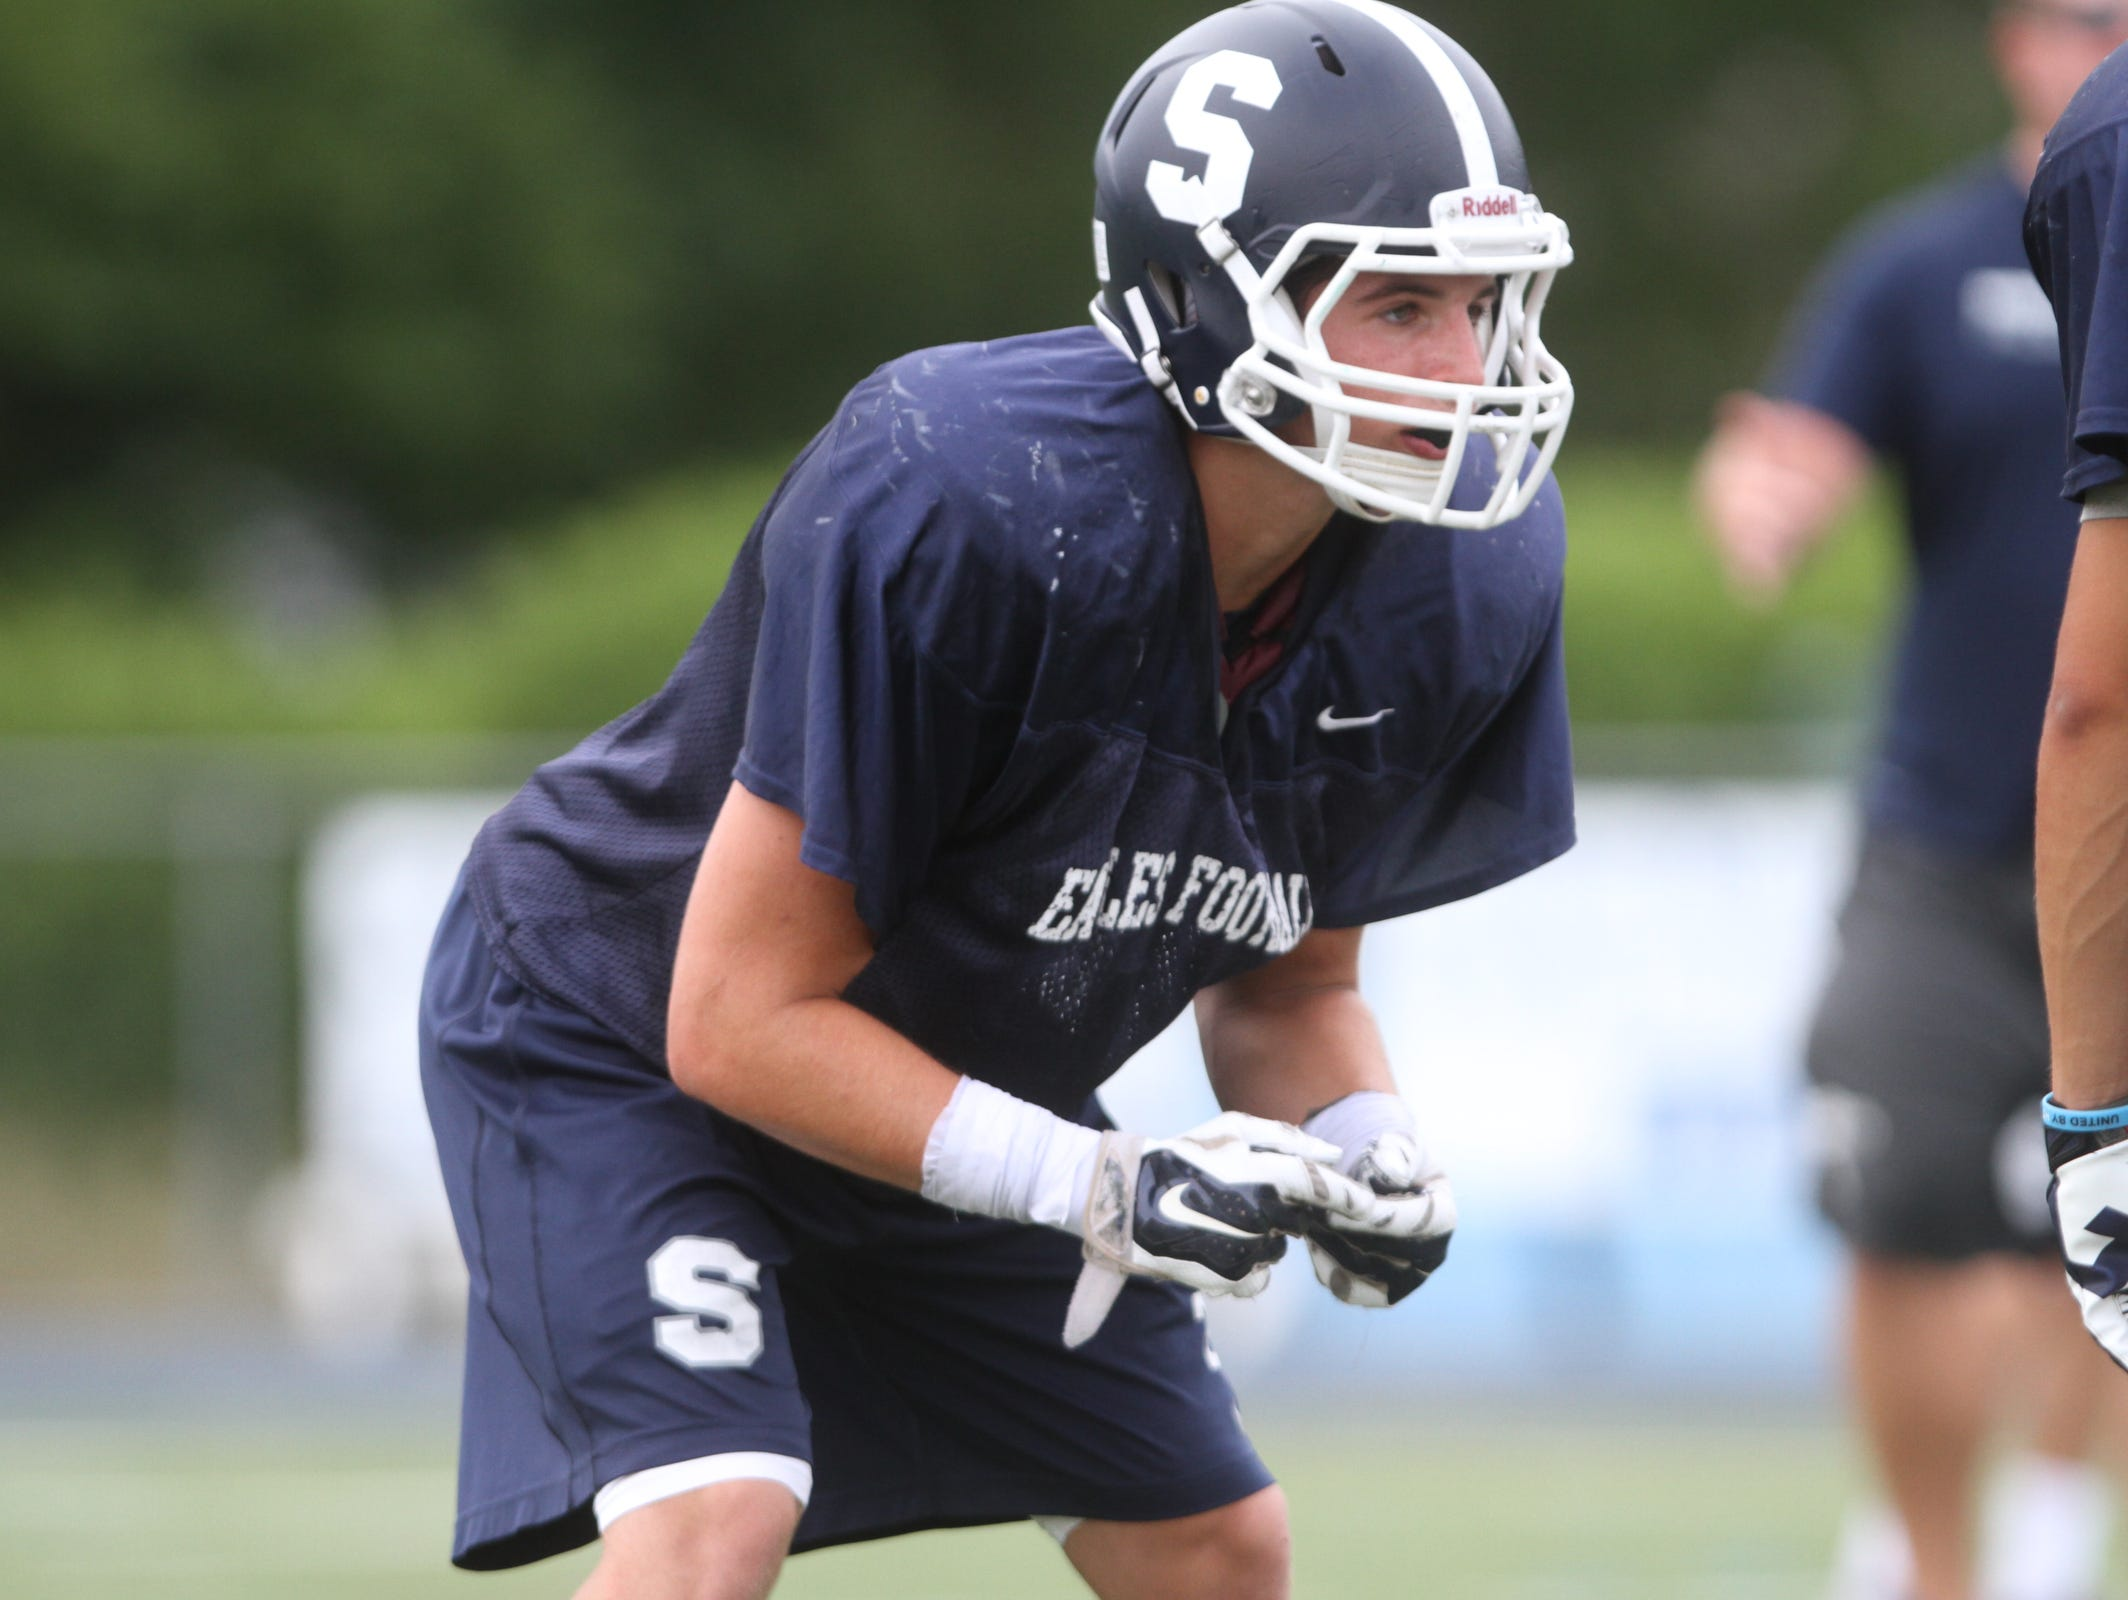 Middletown South senior running back Cole Rogers scored three touchdowns Friday night as Middletown South, ranked No. 1 in the Asbury Park Press Top 10, rolled tio a 42-0 win ovcer Neptune.